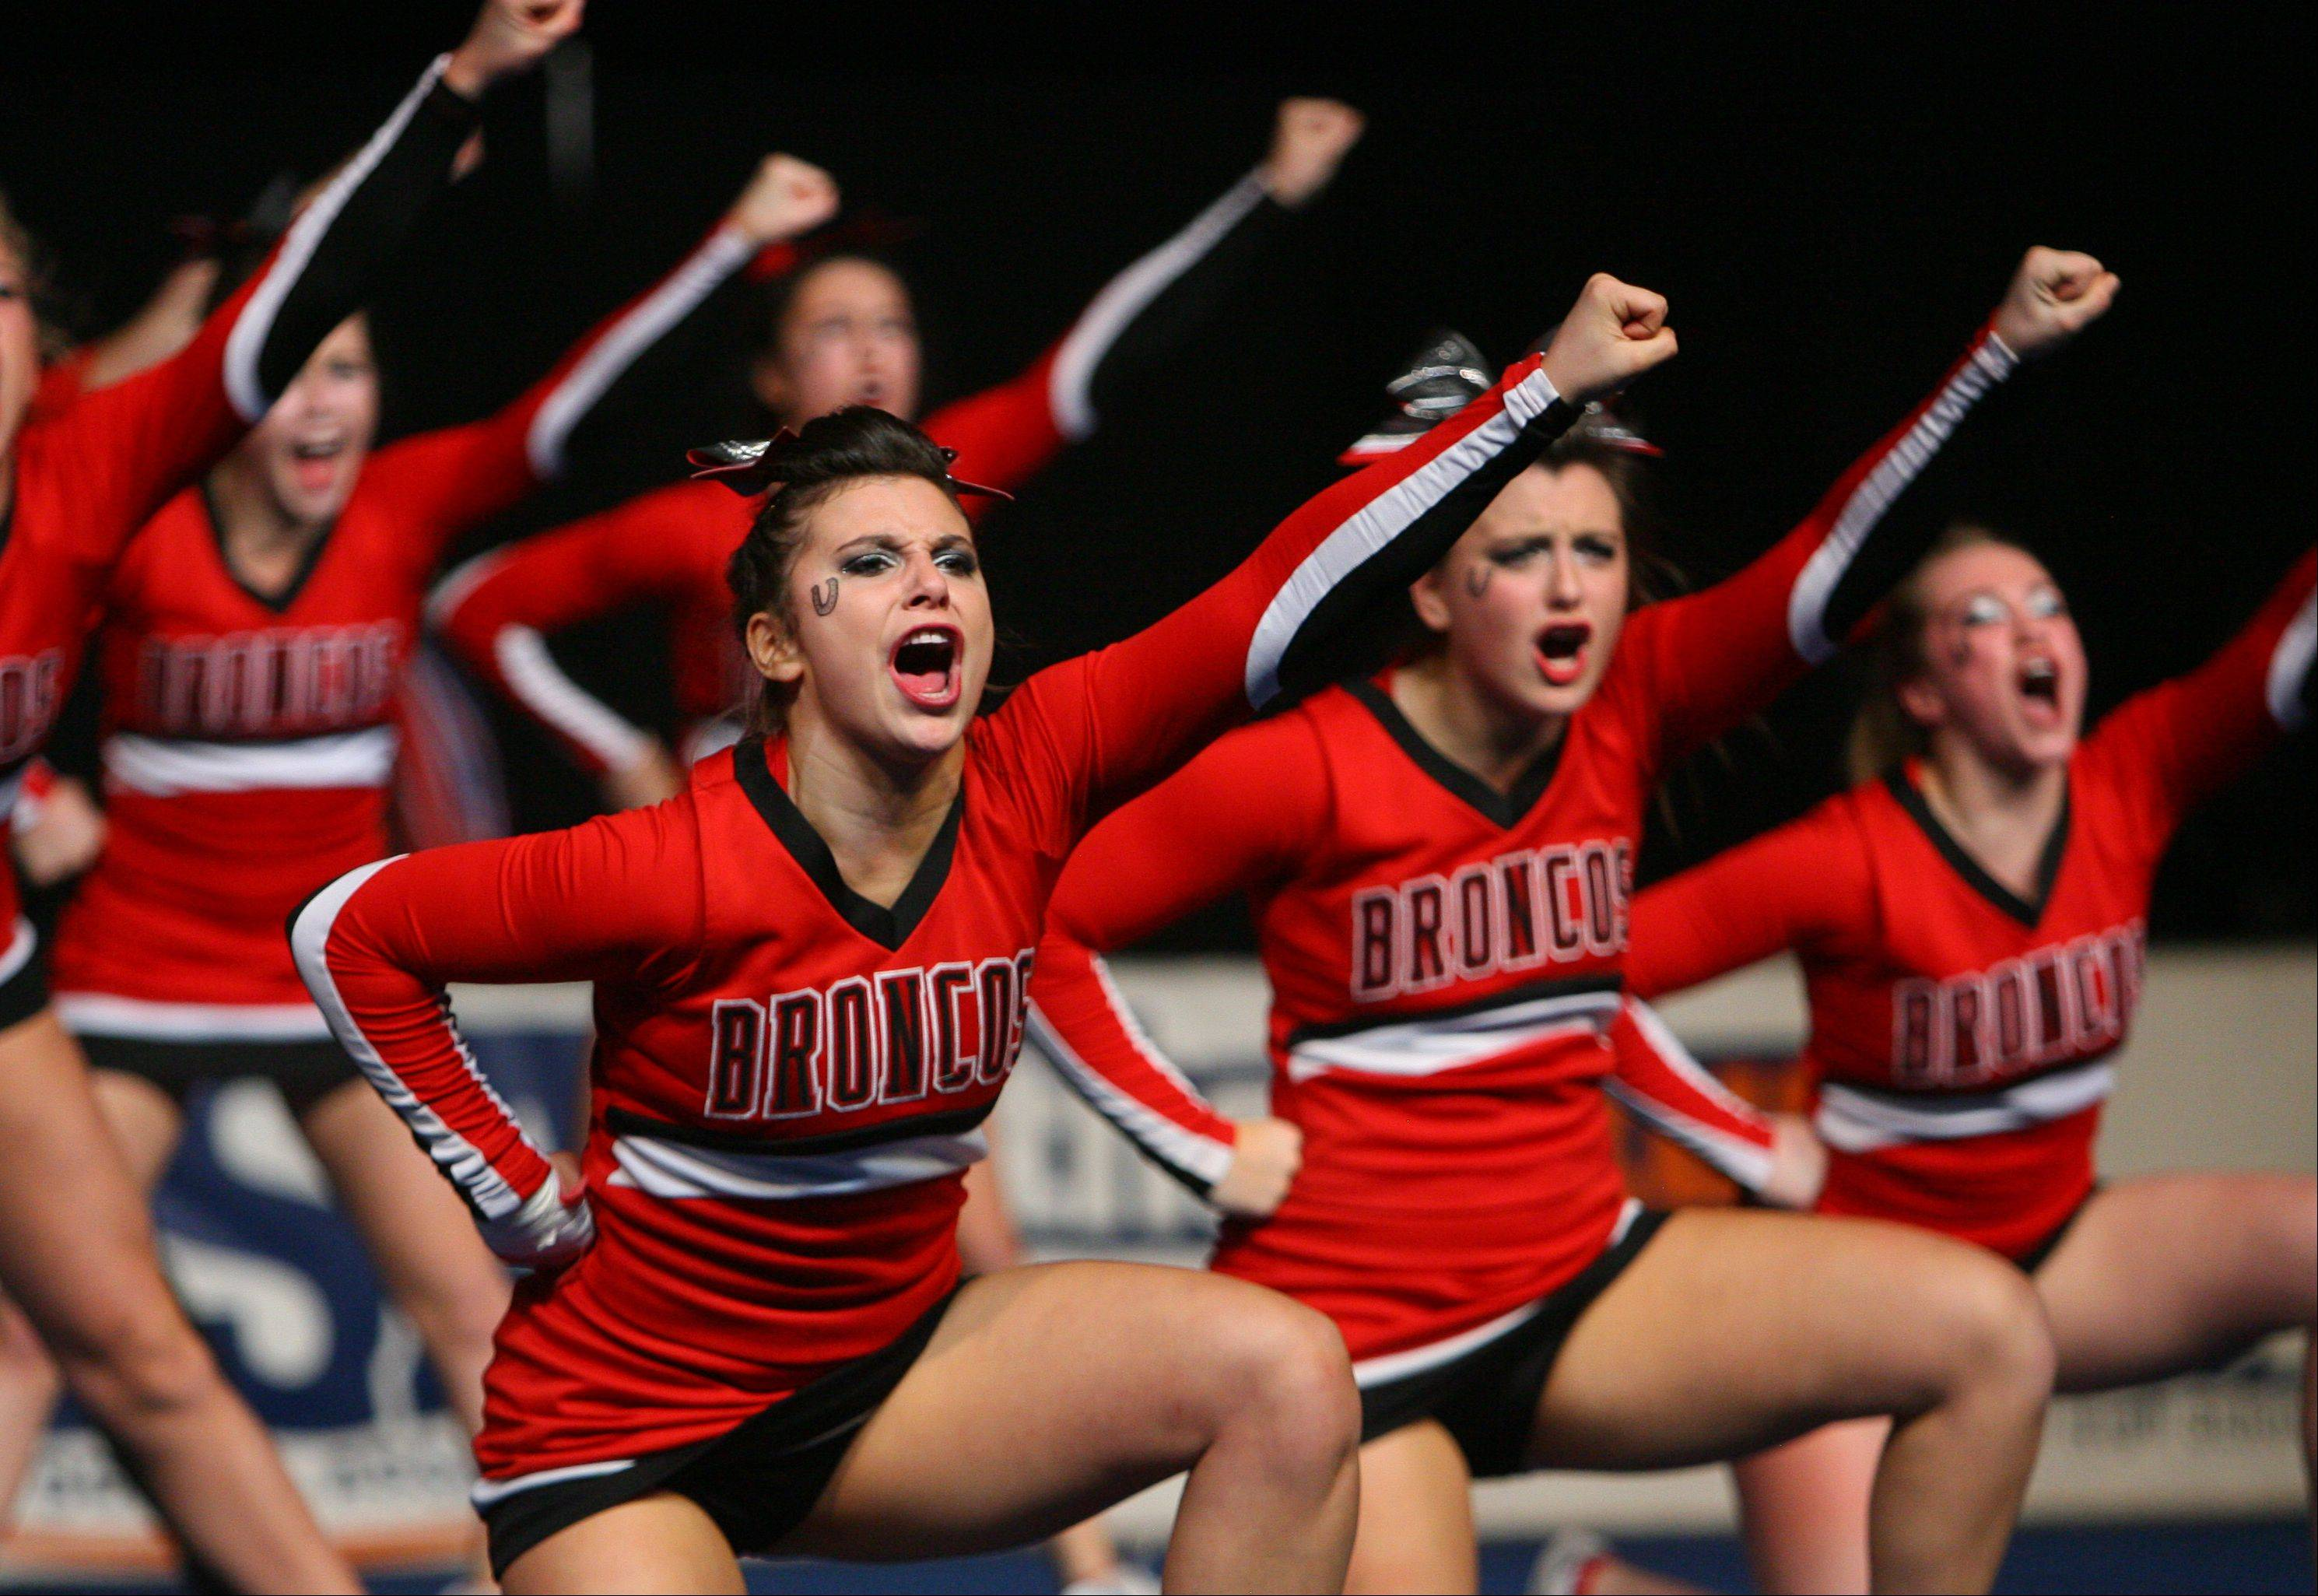 Barrington High School waits for the results in the IHSA Competitive Cheerleading finals on Saturday, Feb. 2 at the U.S. Cellular Coliseum in Bloomington.